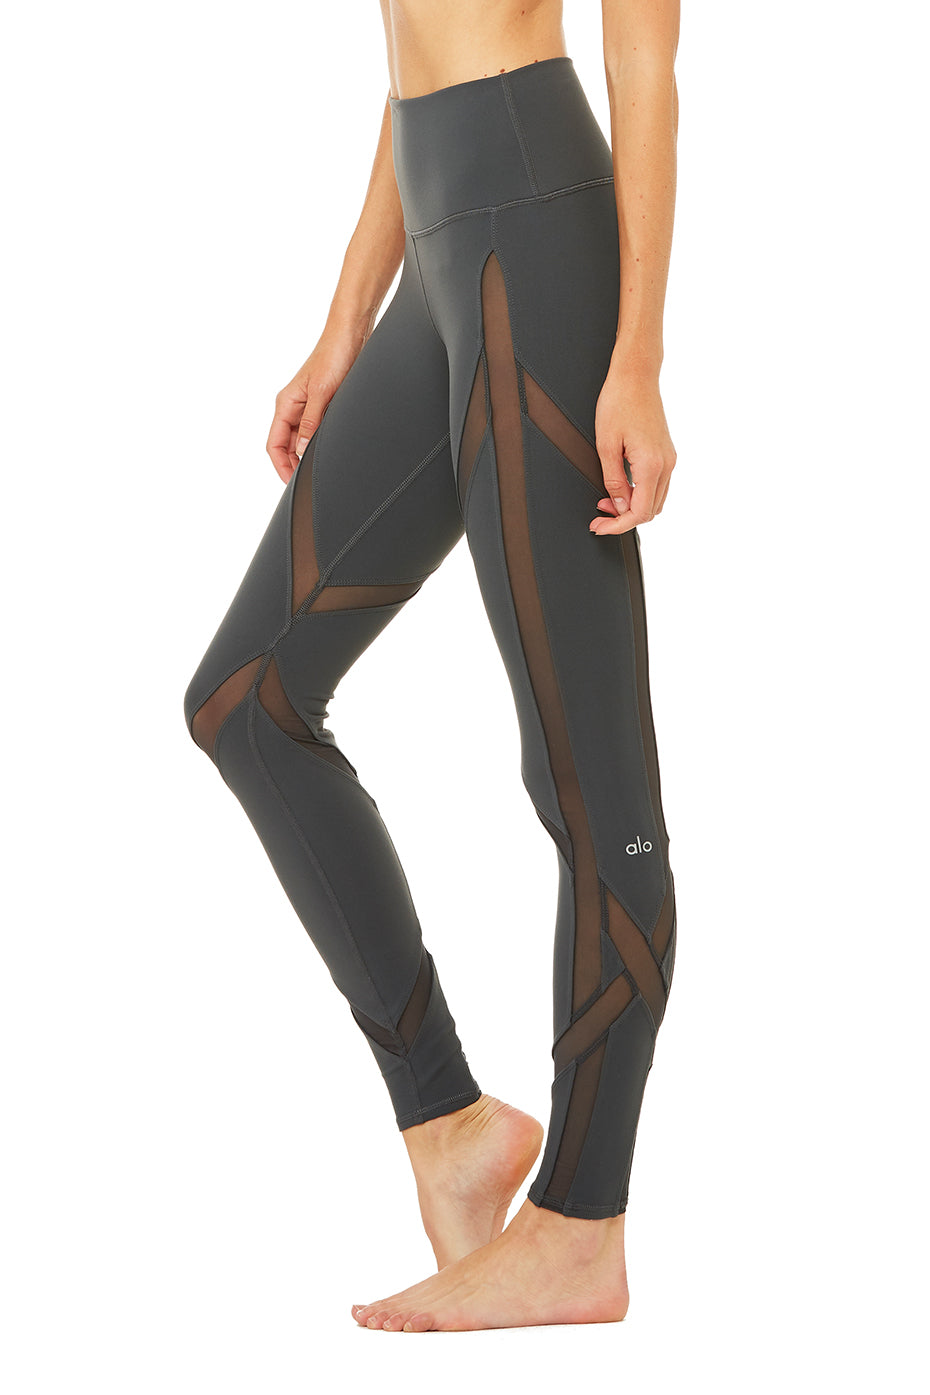 High-Waist Laced Legging - Anthracite